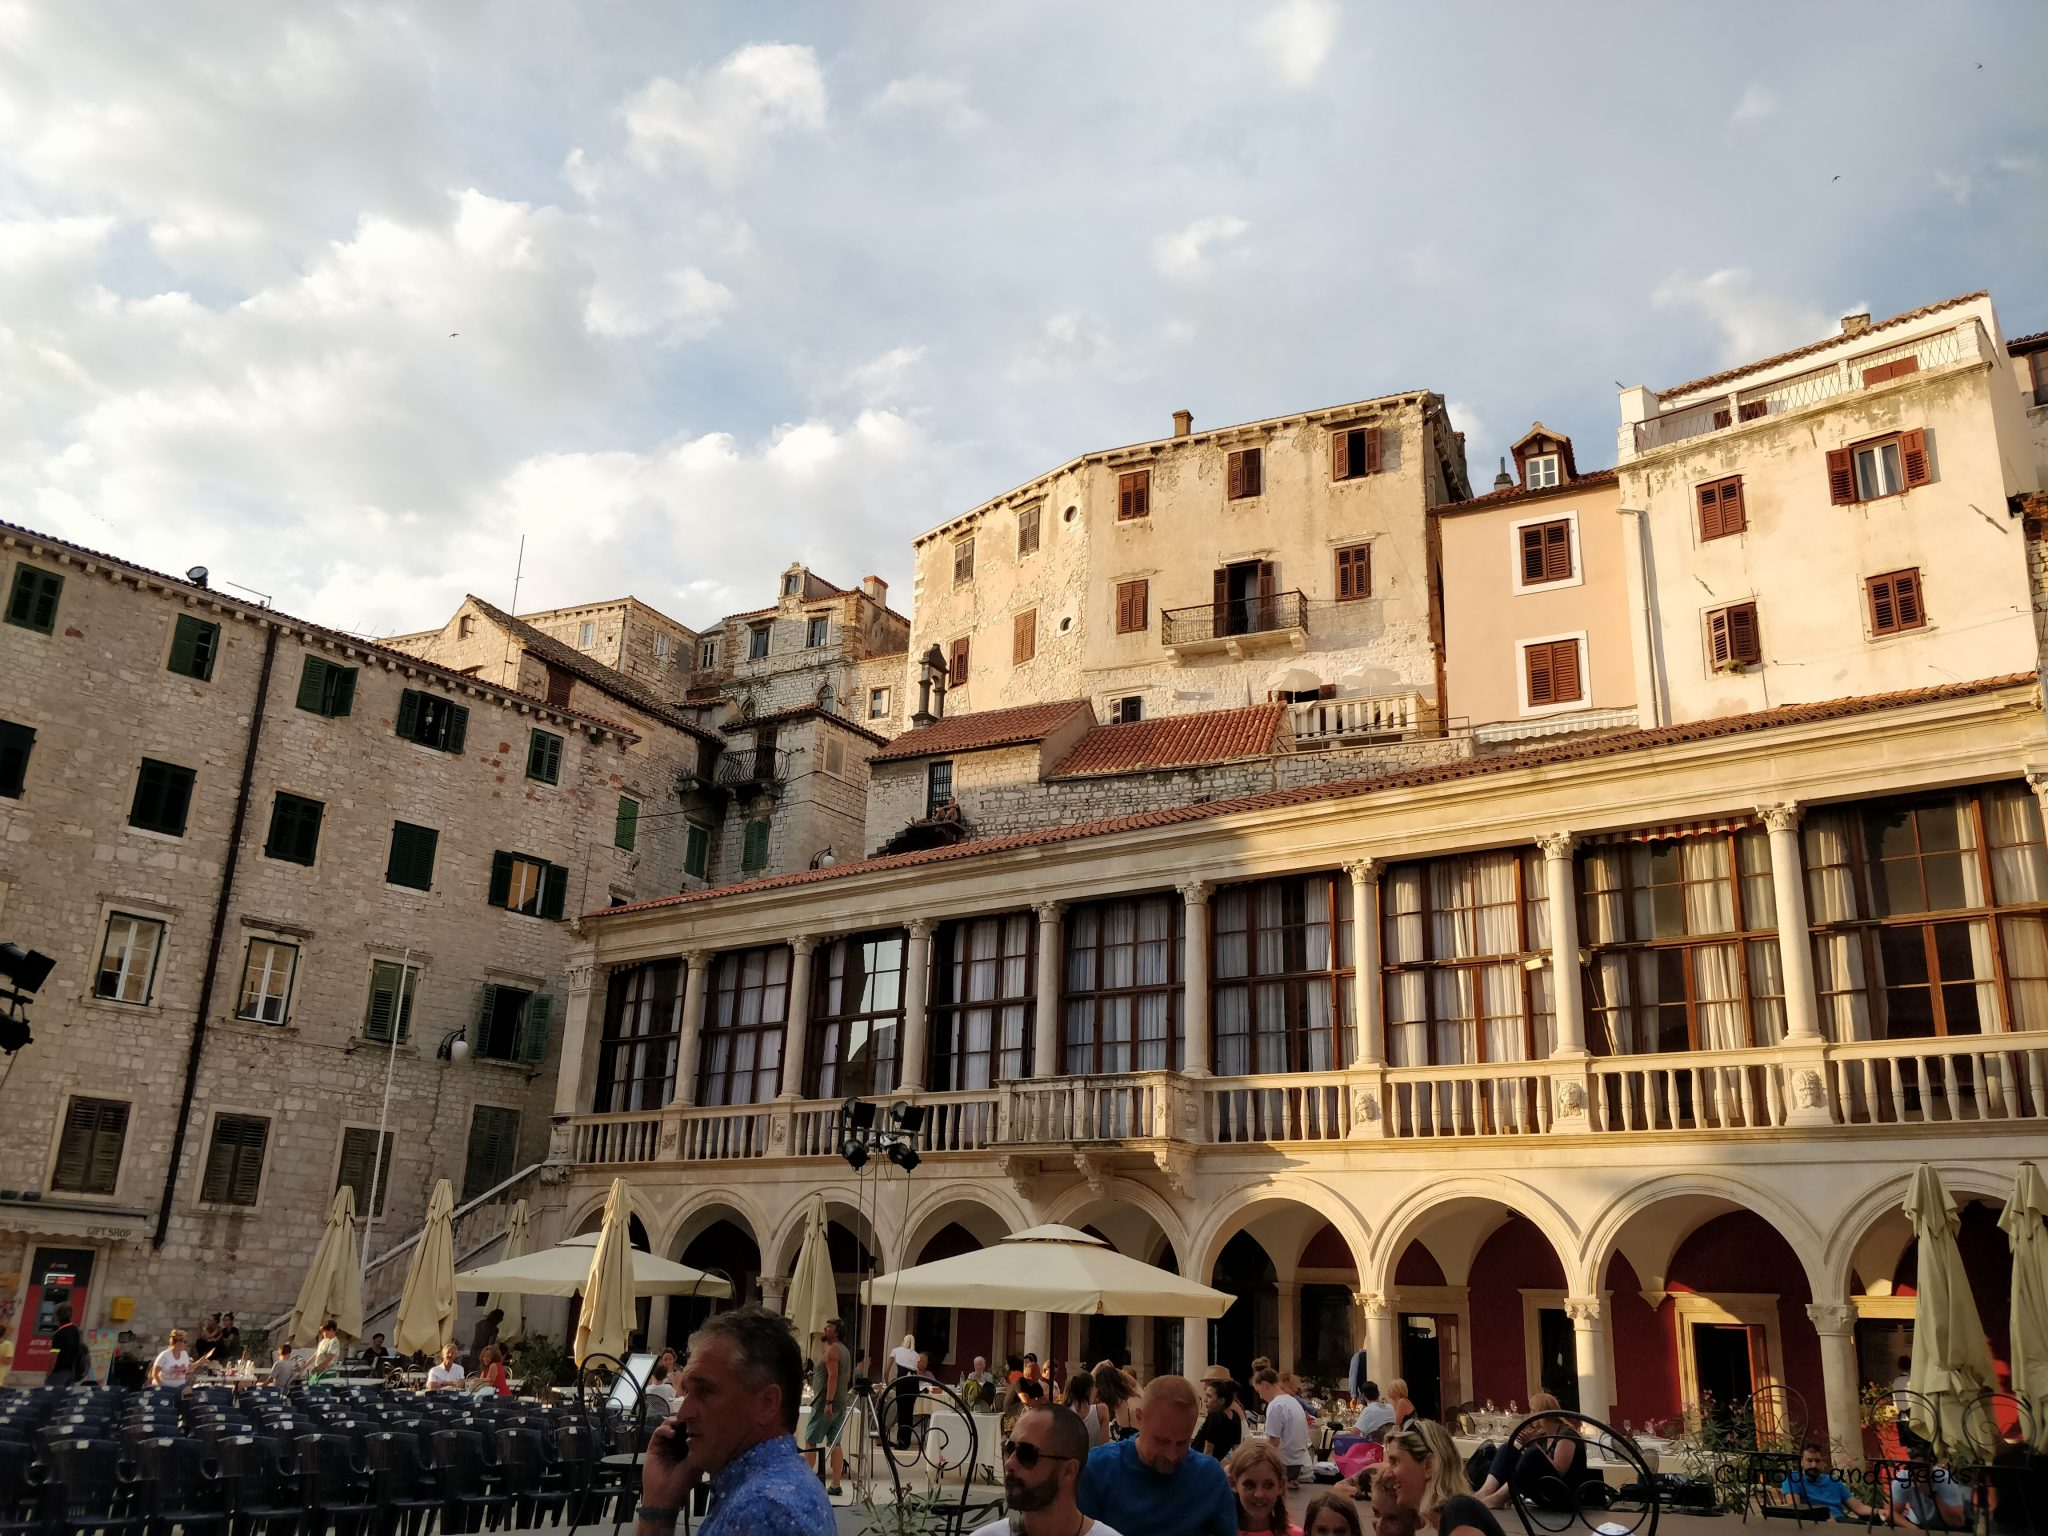 sibenik's town hall - Road trip in Croatia with kids